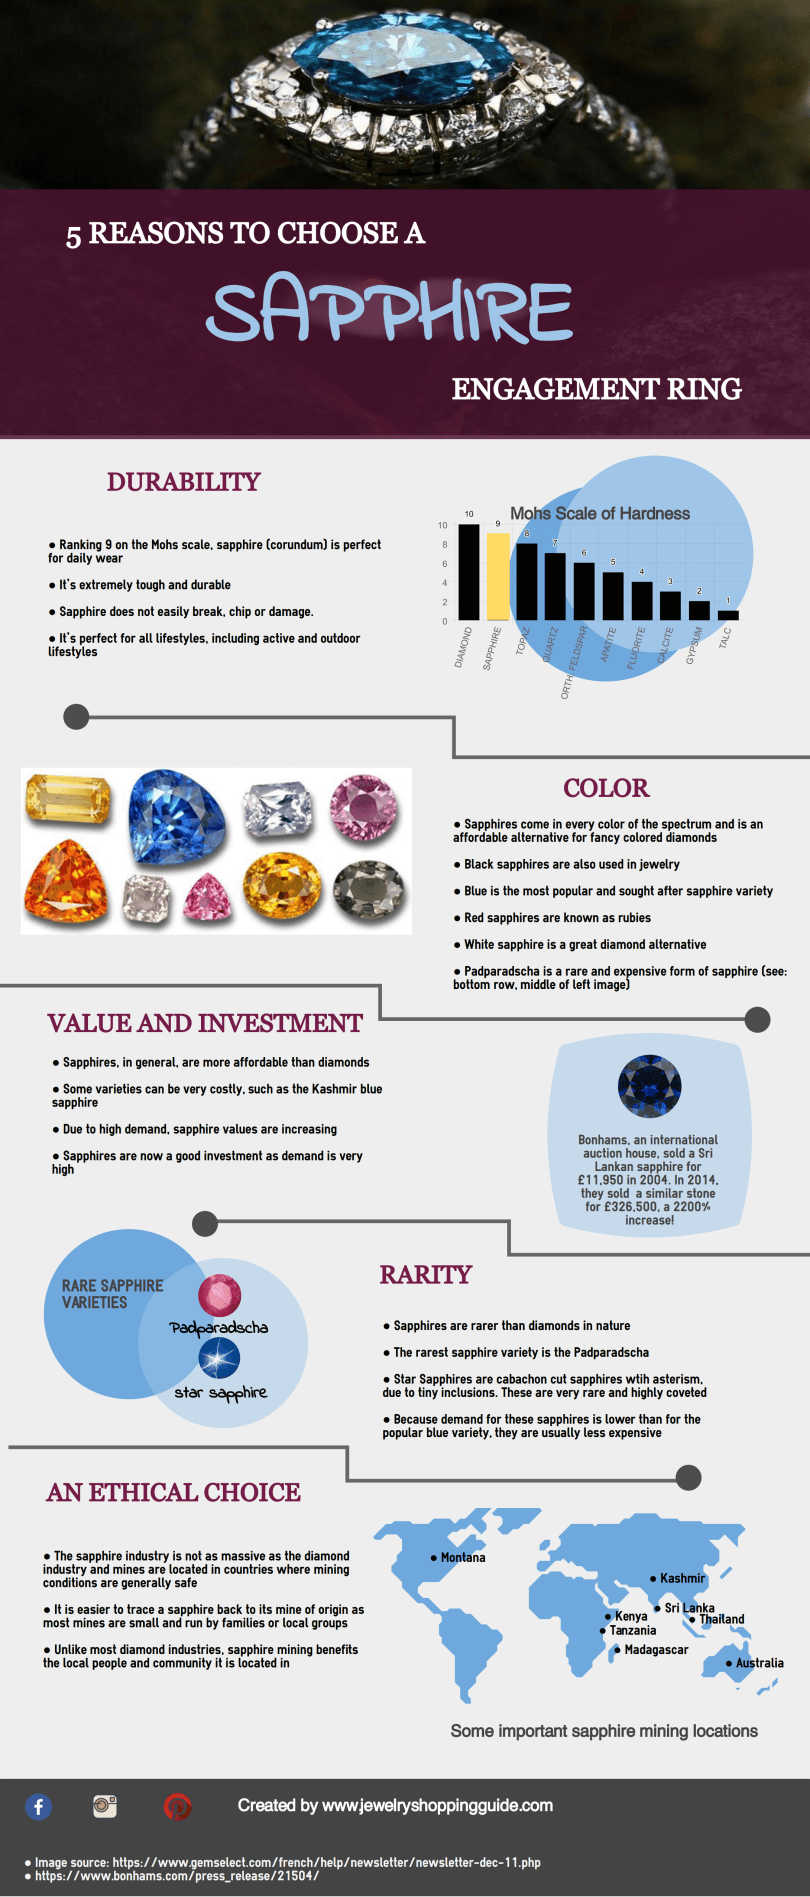 TOP REASONS TO BUY A SAPPHIRE ENGAGEMENT RING INFOGRAPHIC